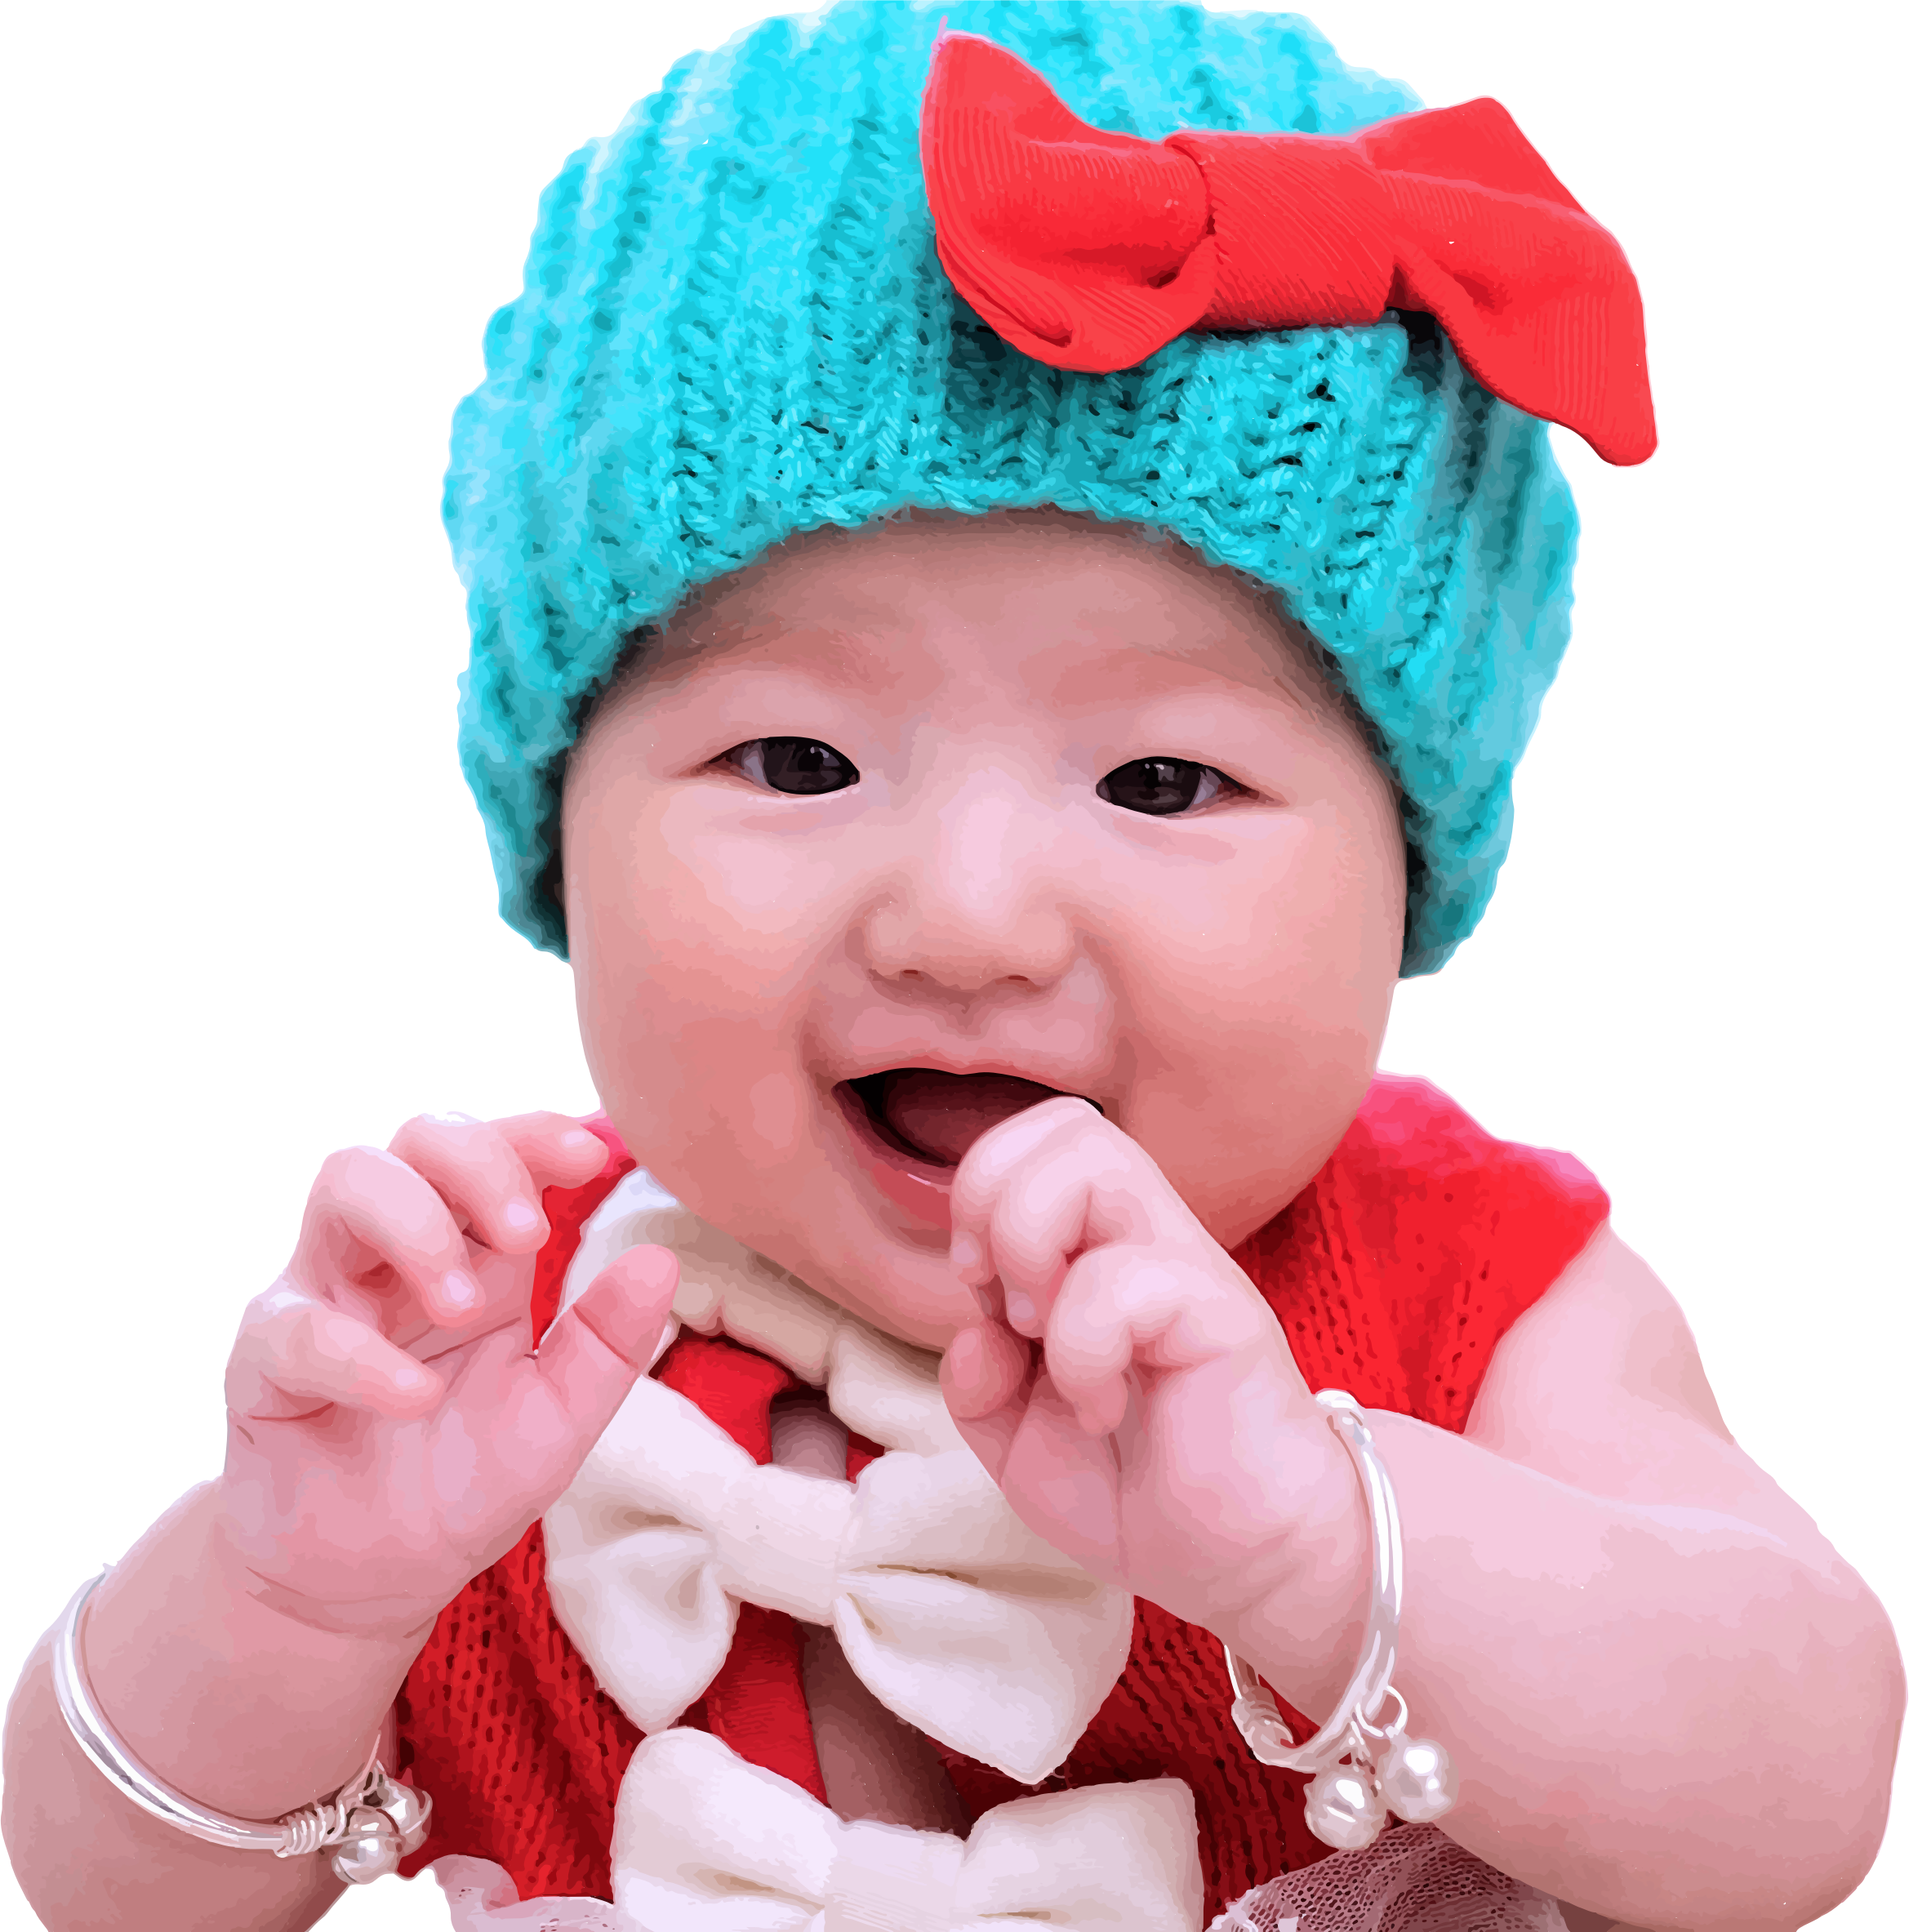 Clipart Cute Baby - HD Wallpapers - PNG HD Baby